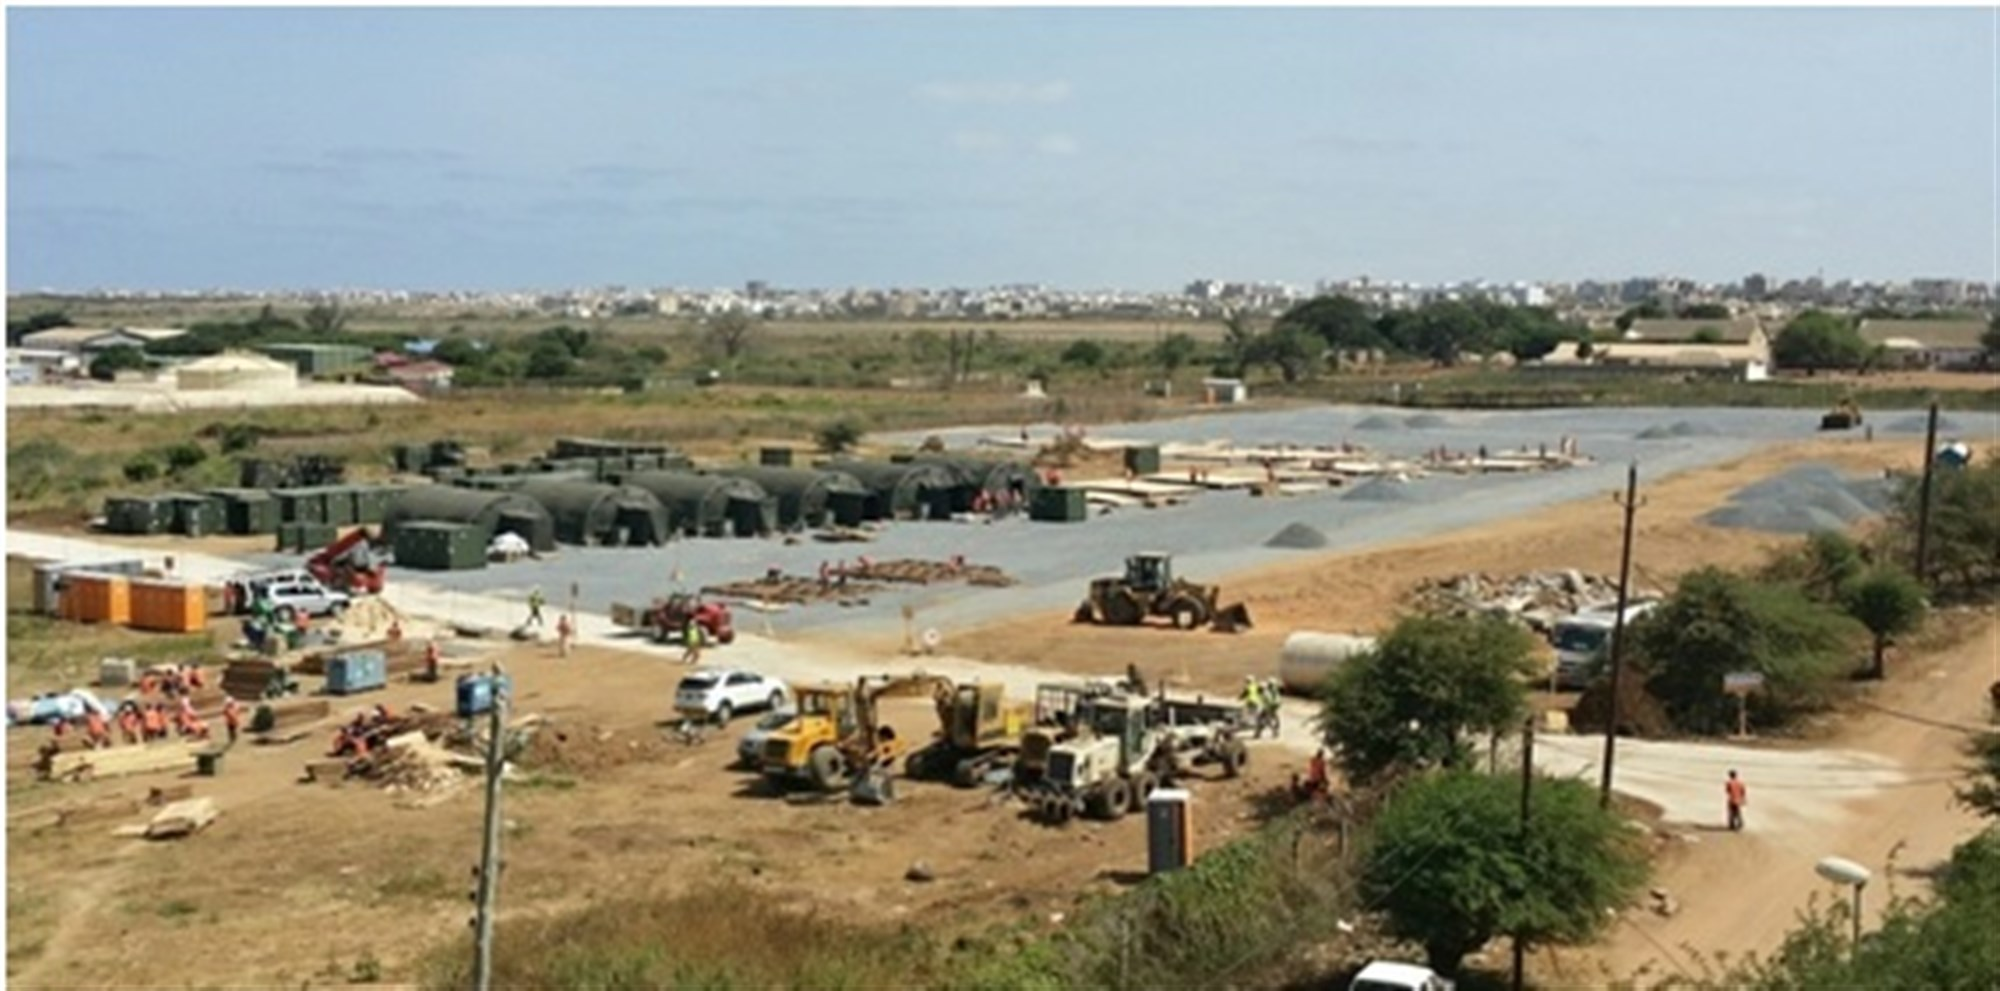 Construction of Initial Staging Base (ISB), Dakar, Senegal. Deliberate planning and actions across the entire logistics enterprise united the efforts of a multi-disciplined, interagency team formed across nations, governments and non-government organizations (NGOs) which directly led to success in OPERATION United Assistance. (U.S. AFRICOM photo/released)